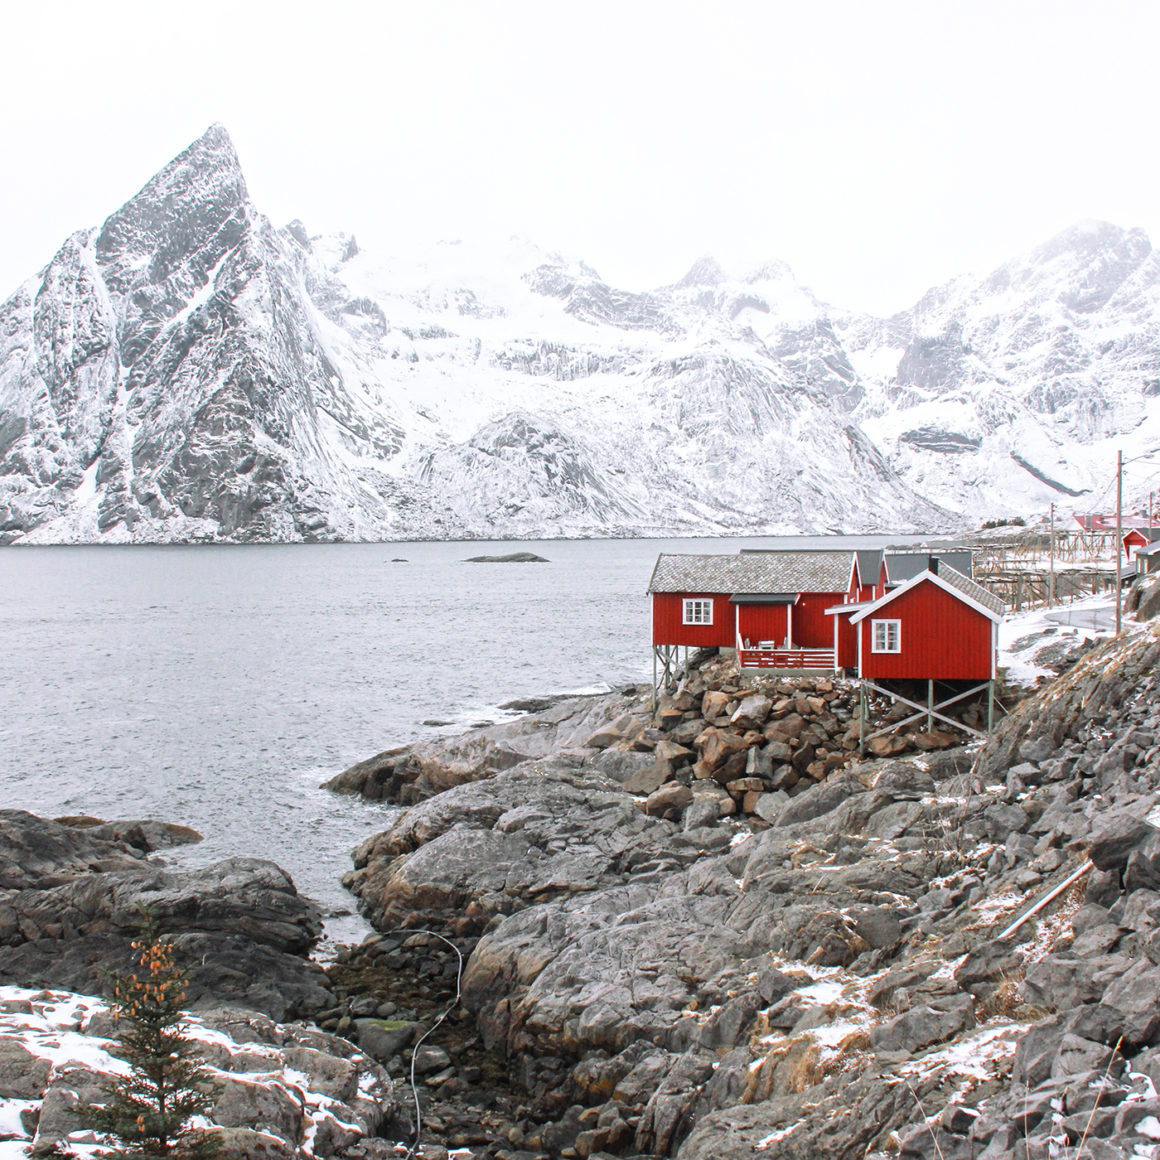 Pl Suggest Some Nice Places In Kerala And Best Time For: Lofoten Islands: Exploring The Arctic Landscape